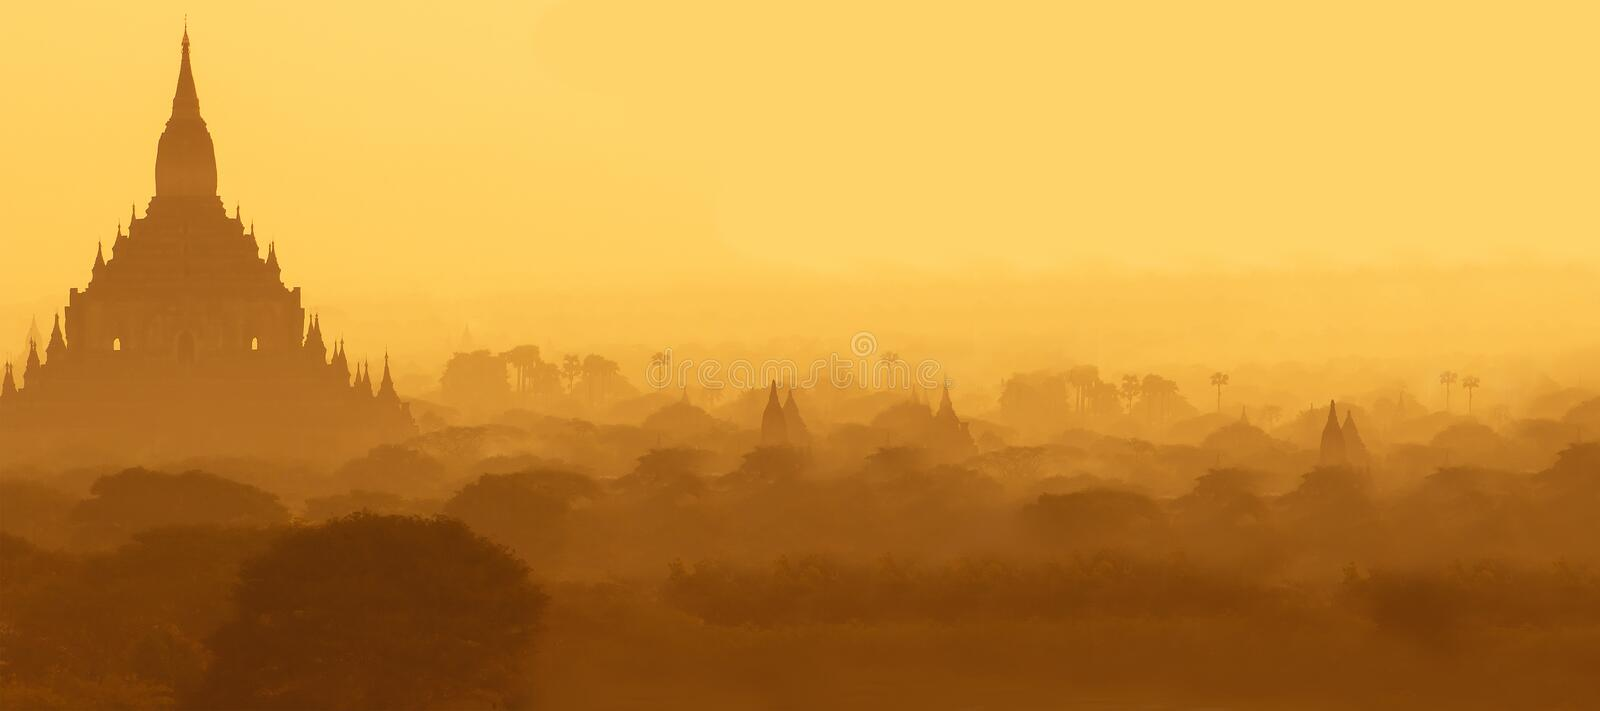 Outlines of an ancient Buddhist temples in Bagan, Myanmar in the morning mist. Aerial view. Panoramic landscape. Copy space royalty free stock images